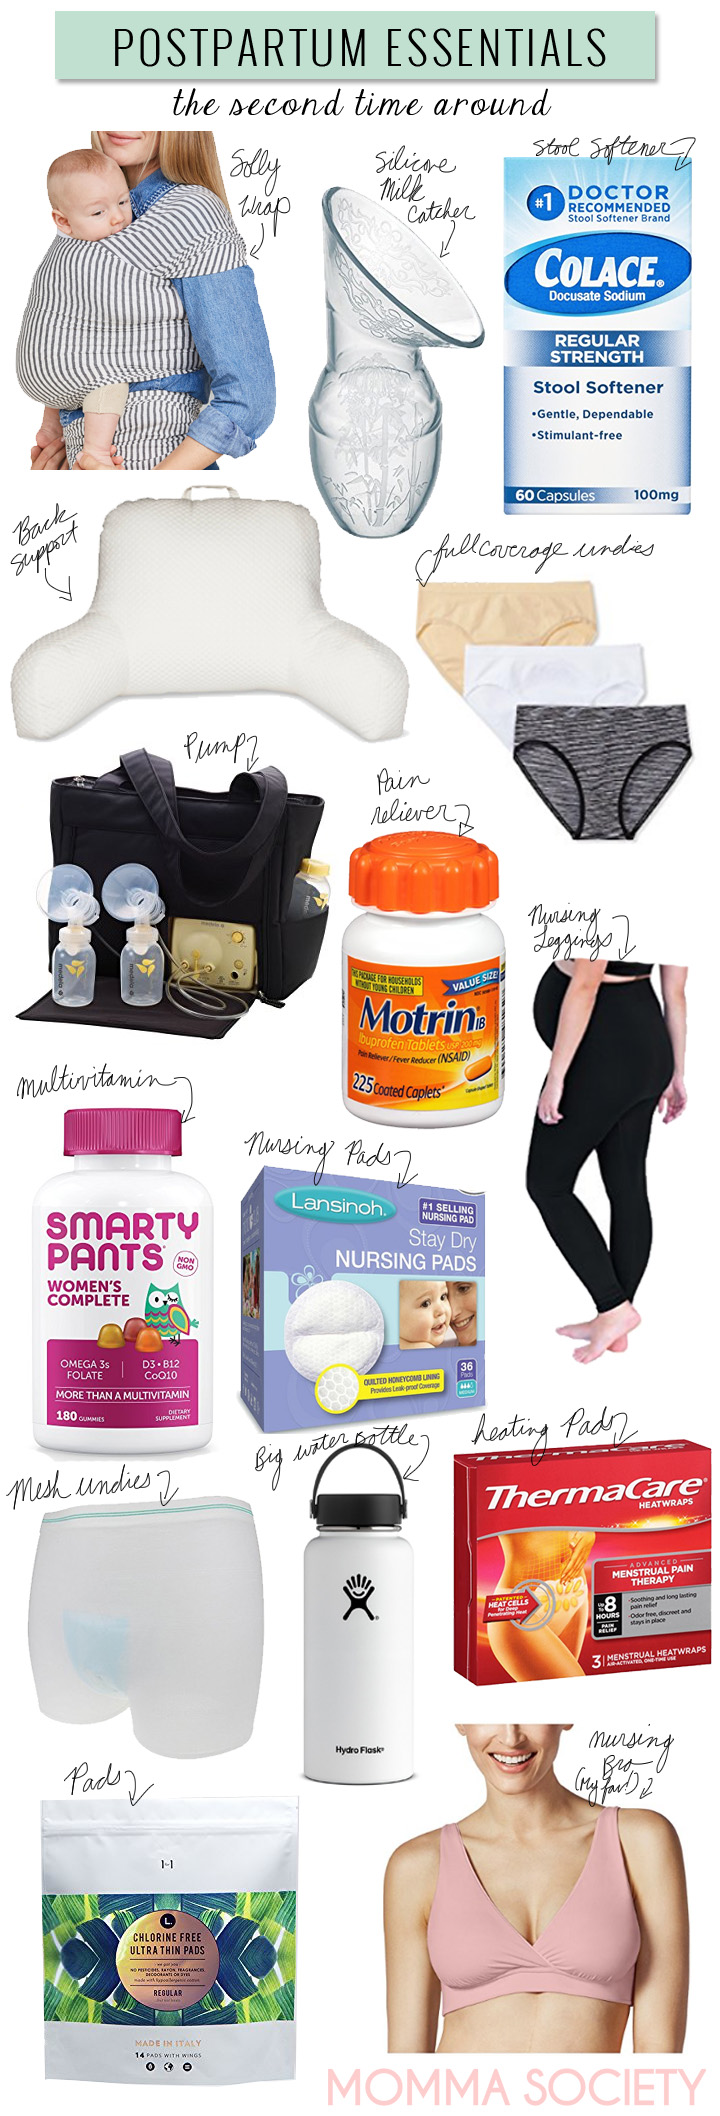 What You Really Need for Postpartum the Second Time Around